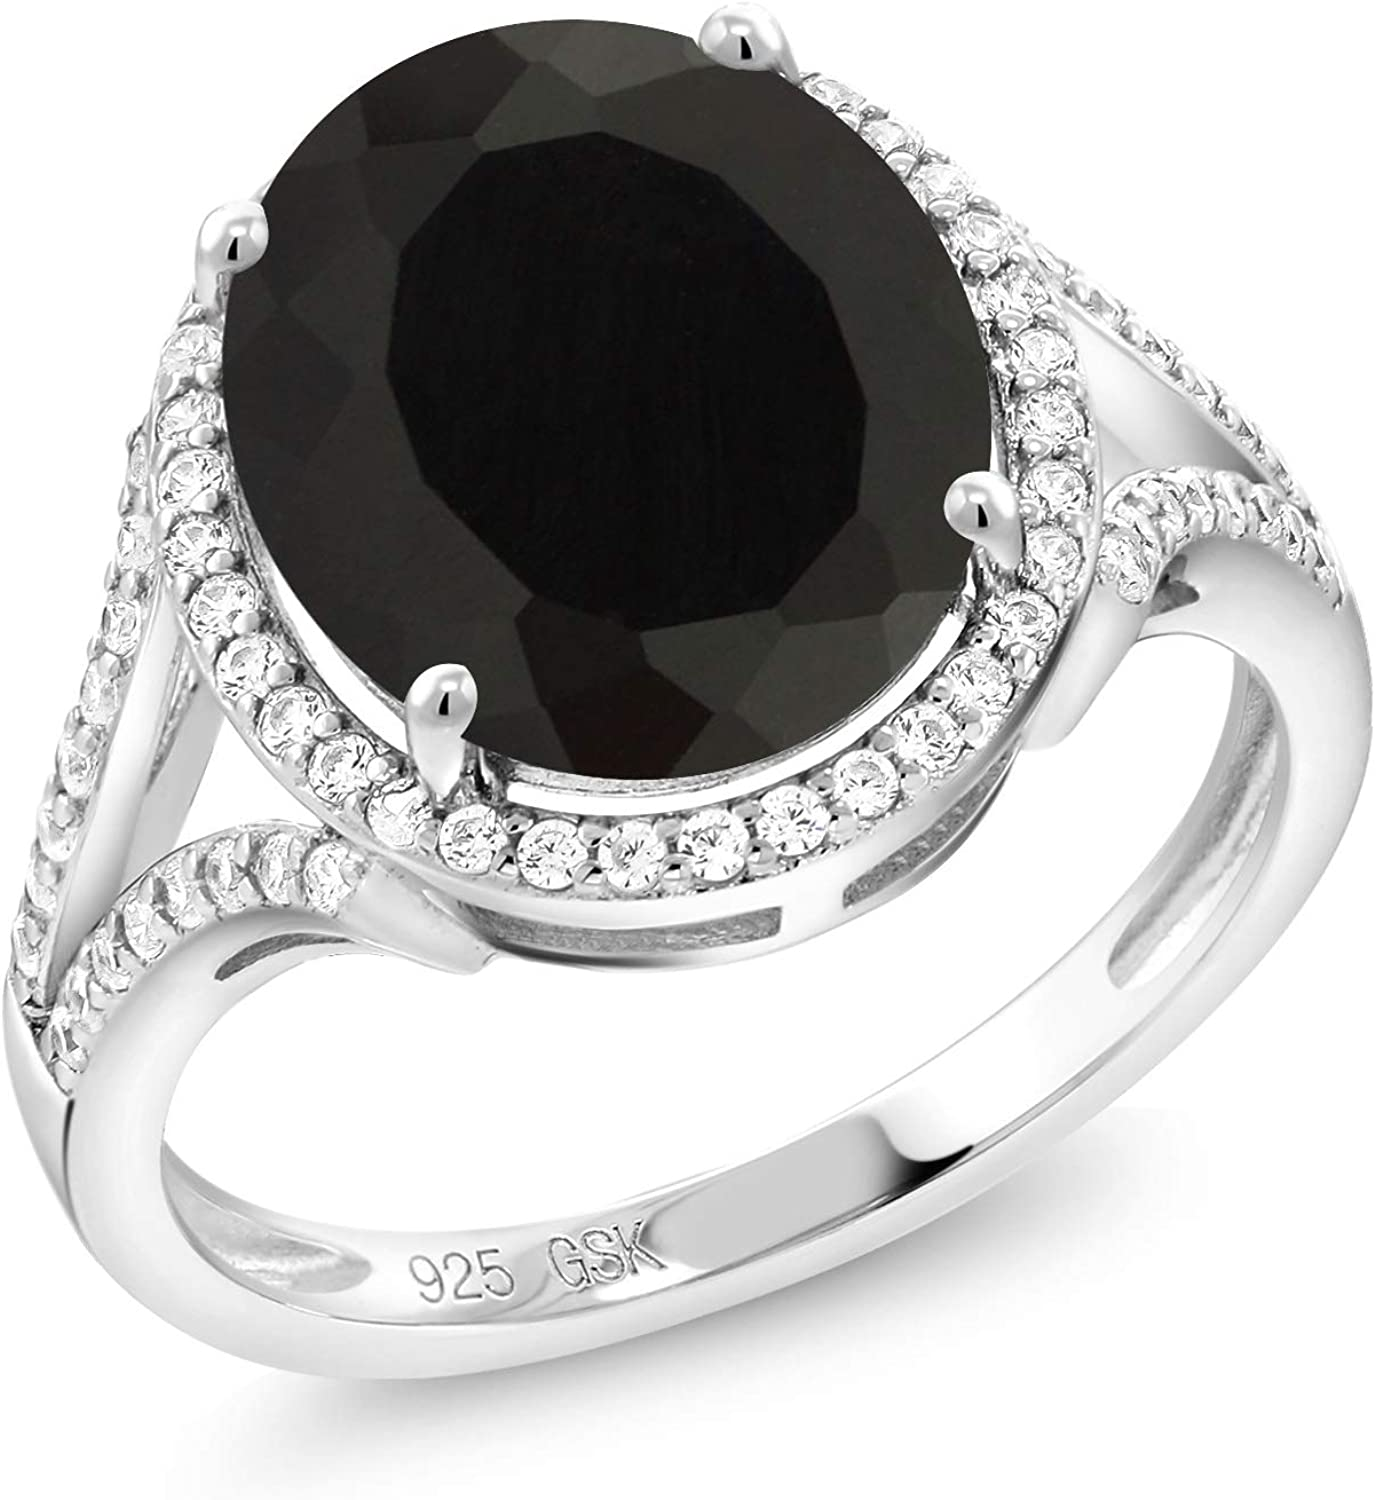 Gem Stone King 925 Sterling Silver Black Max 65% OFF Onyx Max 59% OFF Ring Women's 4.82